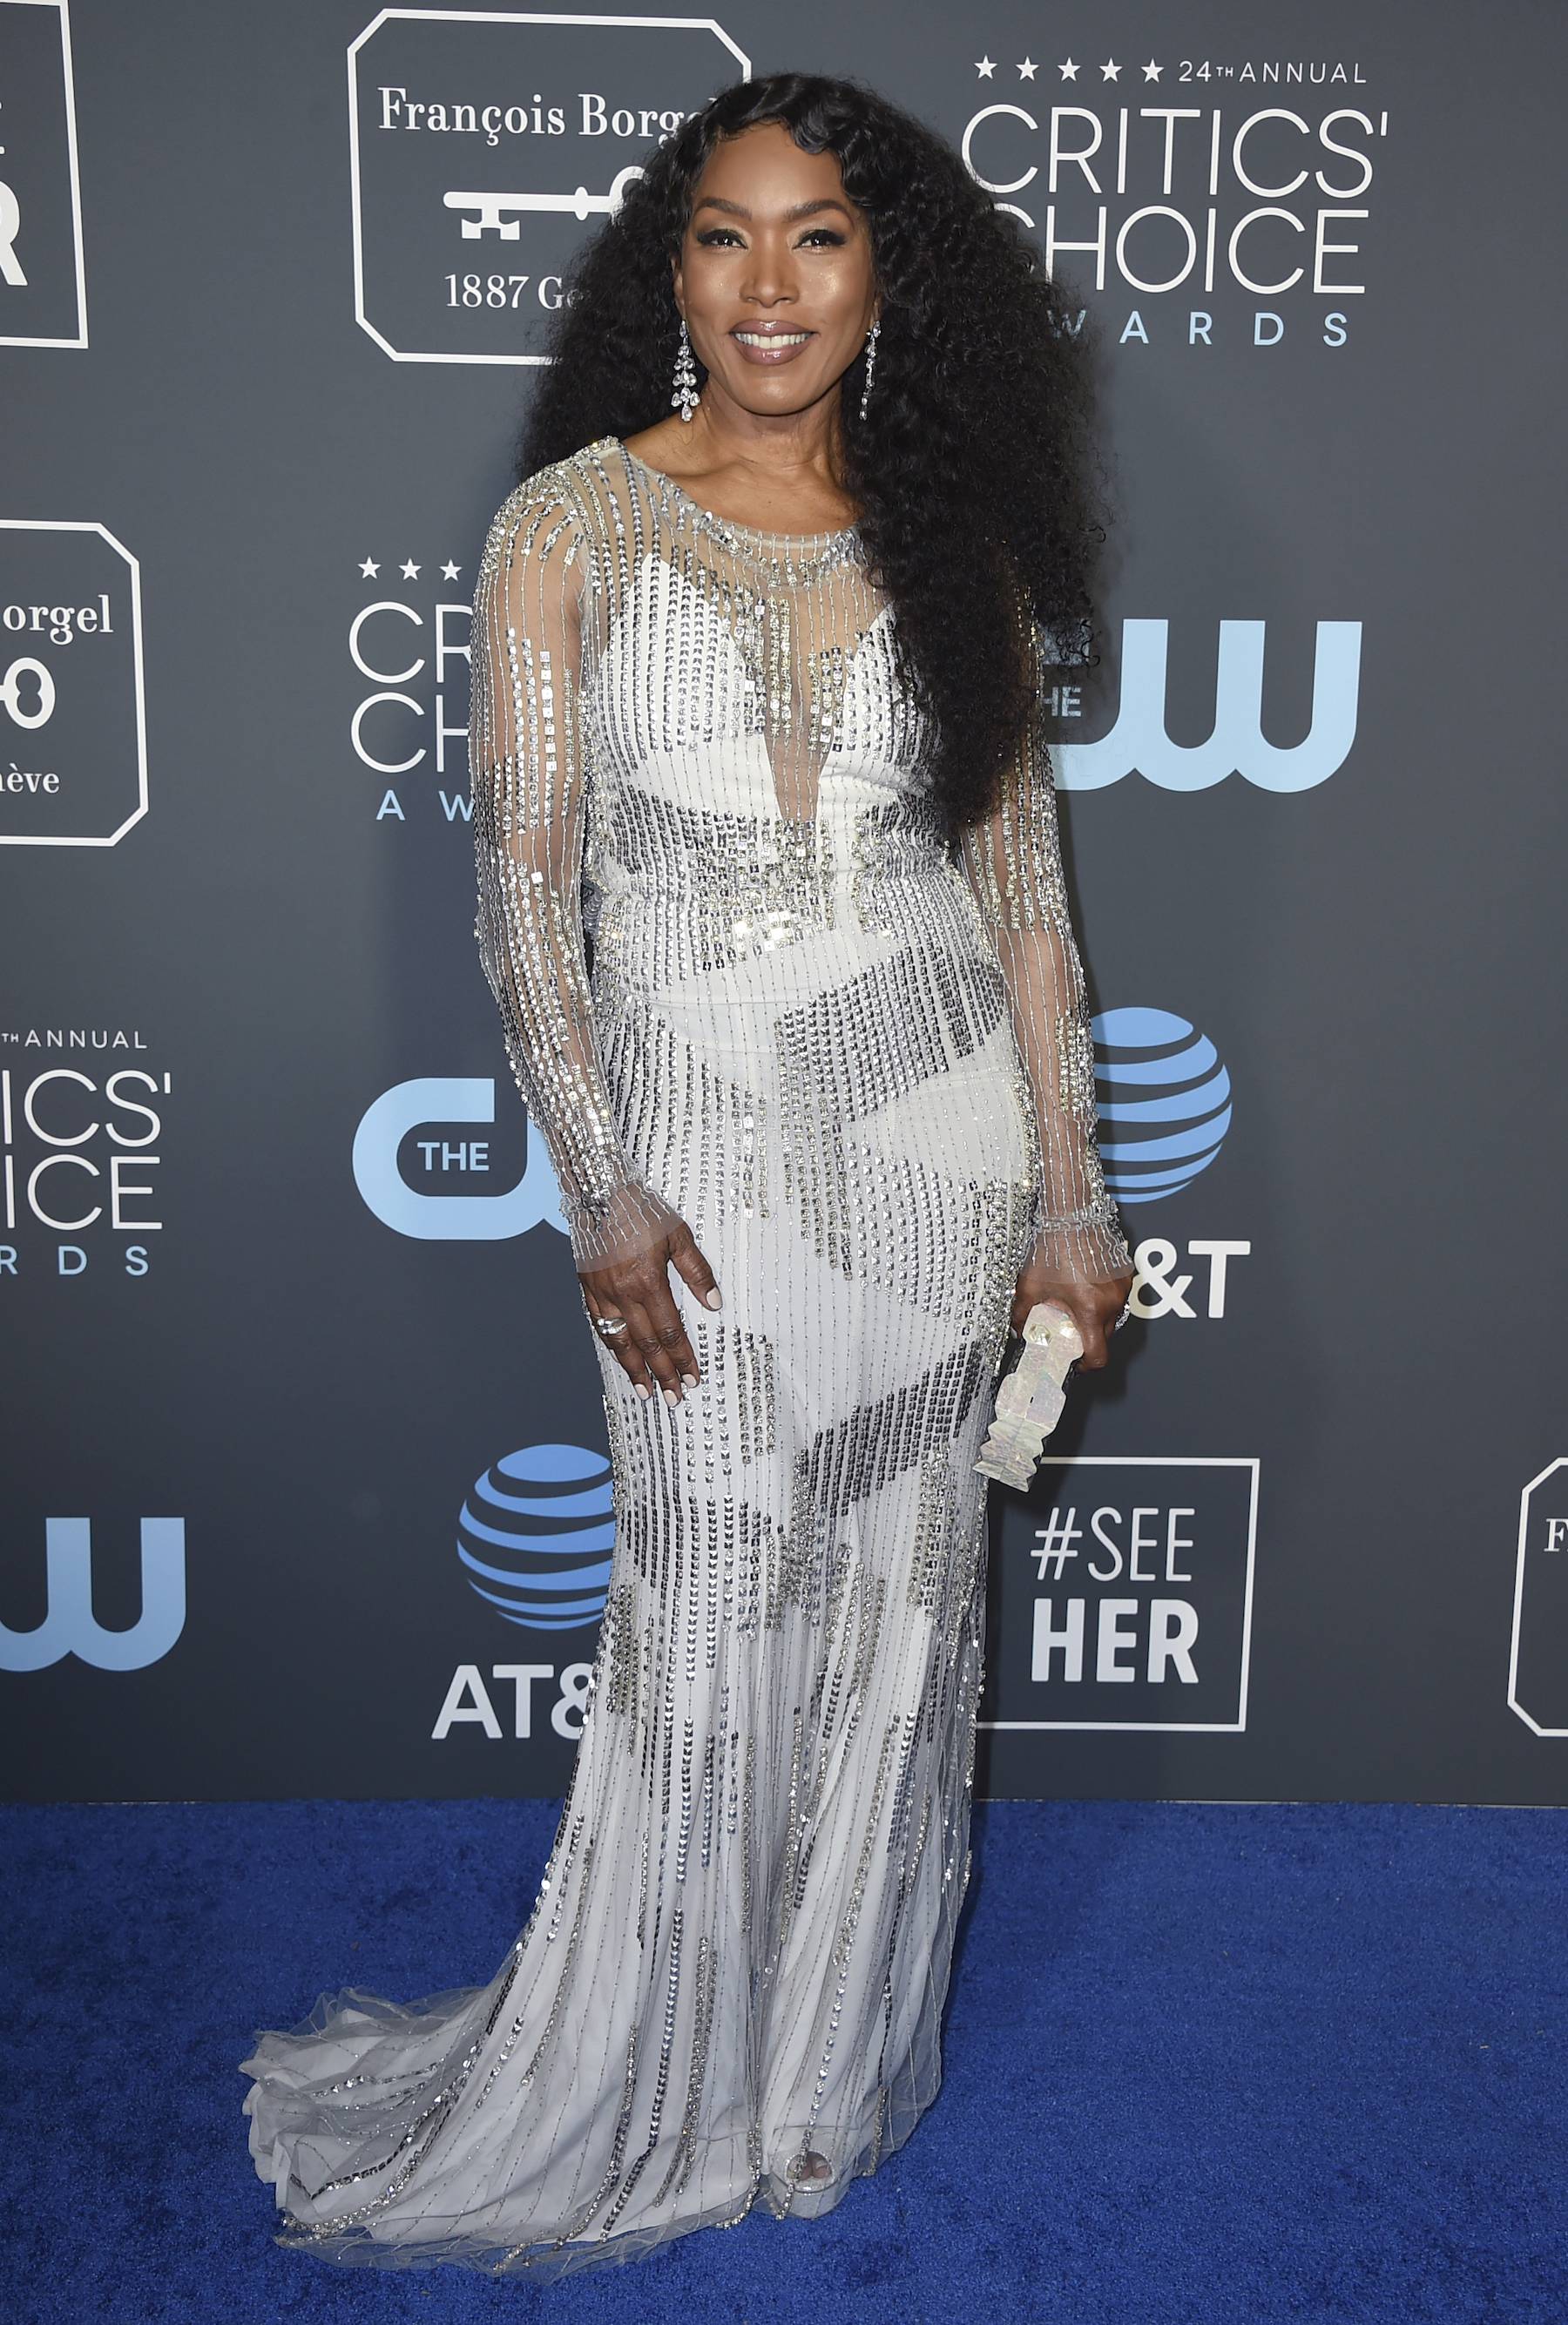 <div class='meta'><div class='origin-logo' data-origin='AP'></div><span class='caption-text' data-credit='Jordan Strauss/Invision/AP'>Angela Bassett arrives at the 24th annual Critics' Choice Awards on Sunday, Jan. 13, 2019, at the Barker Hangar in Santa Monica, Calif.</span></div>